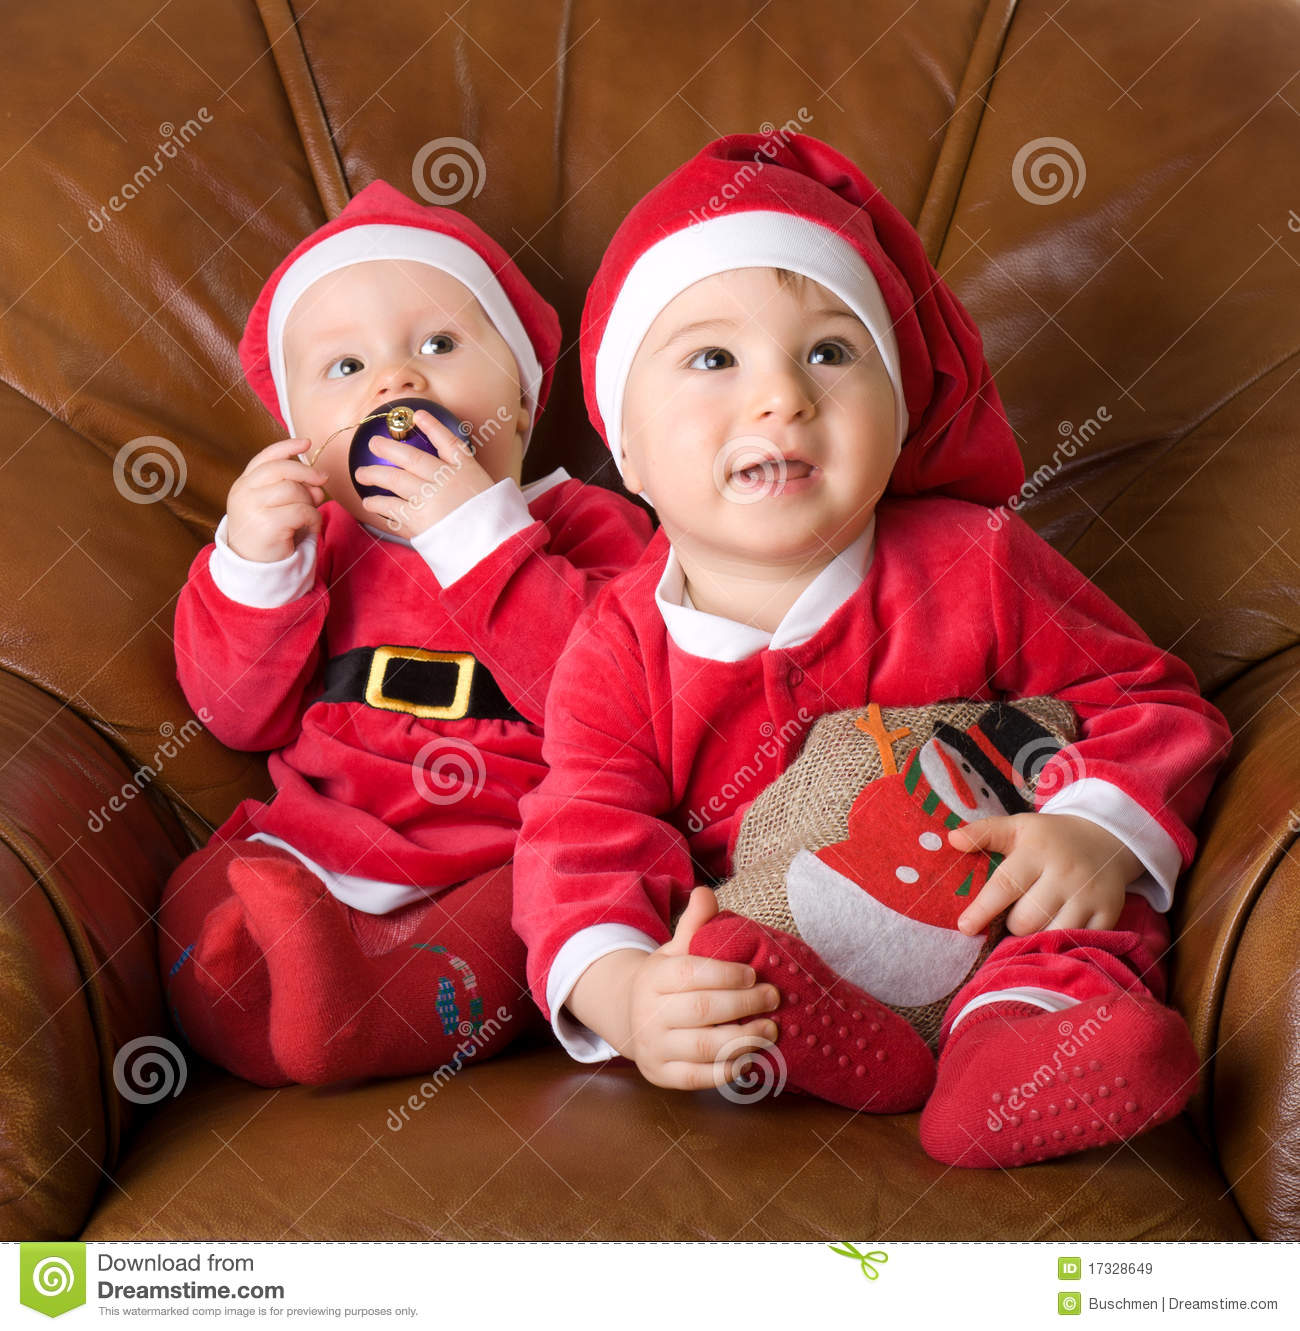 children in the clothes of santa claus - Santa Claus Children